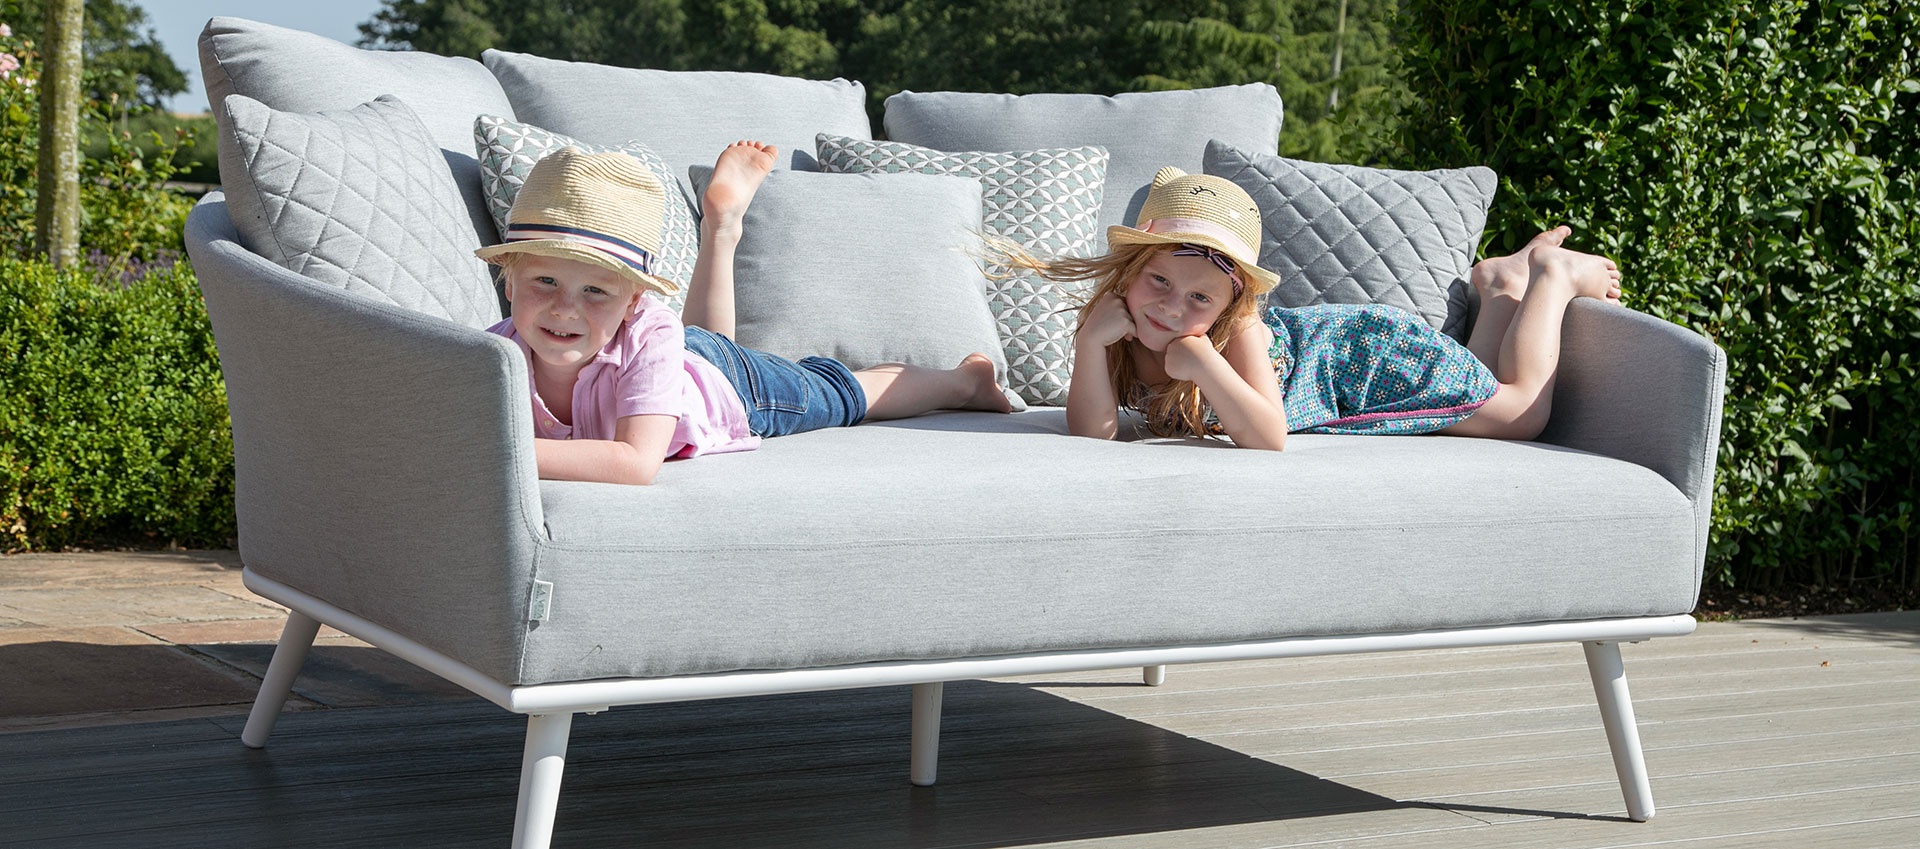 Maze Lounge - Outdoor Fabric Ark Daybed - Lead Chine